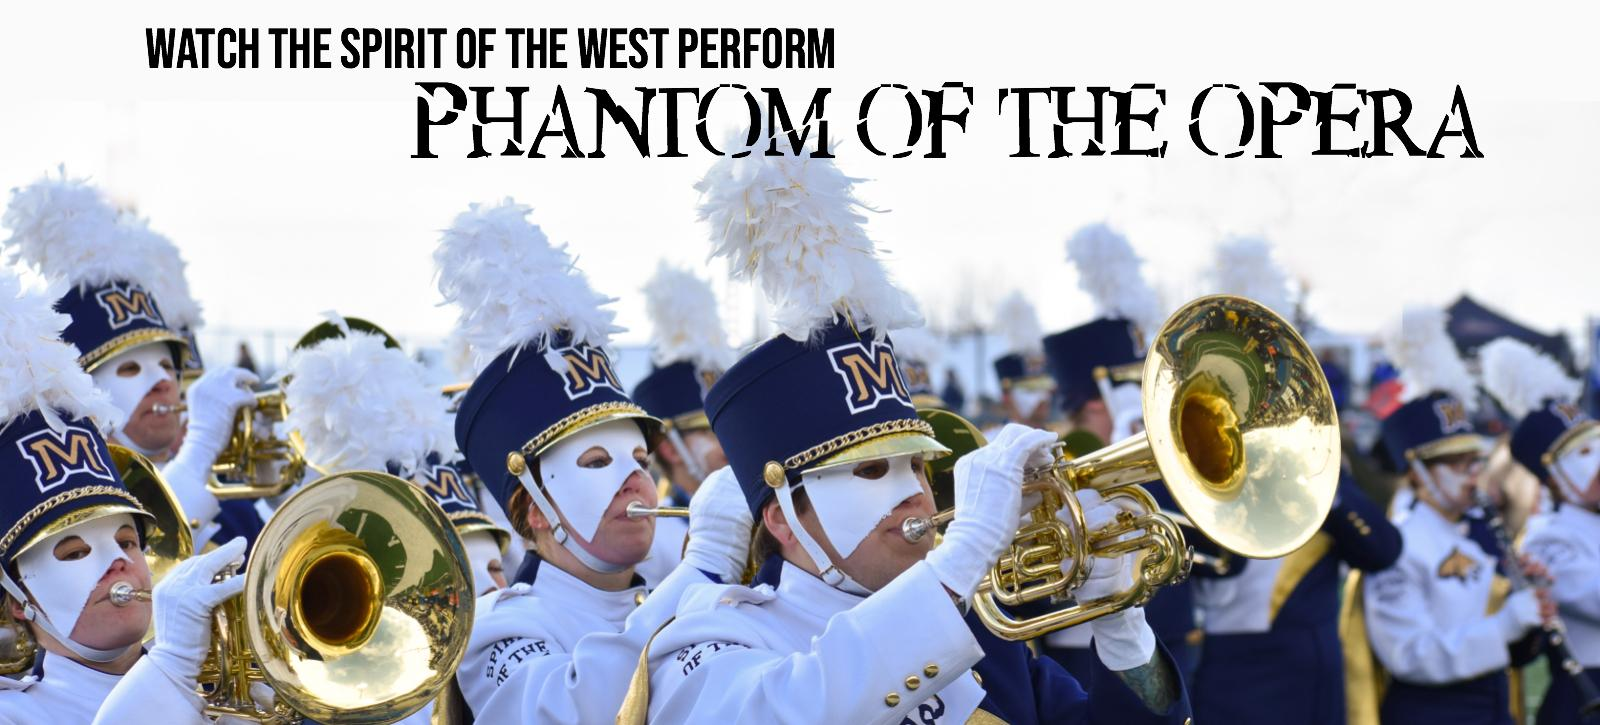 Watch the Spirit of the West perform Phantom of the Opera